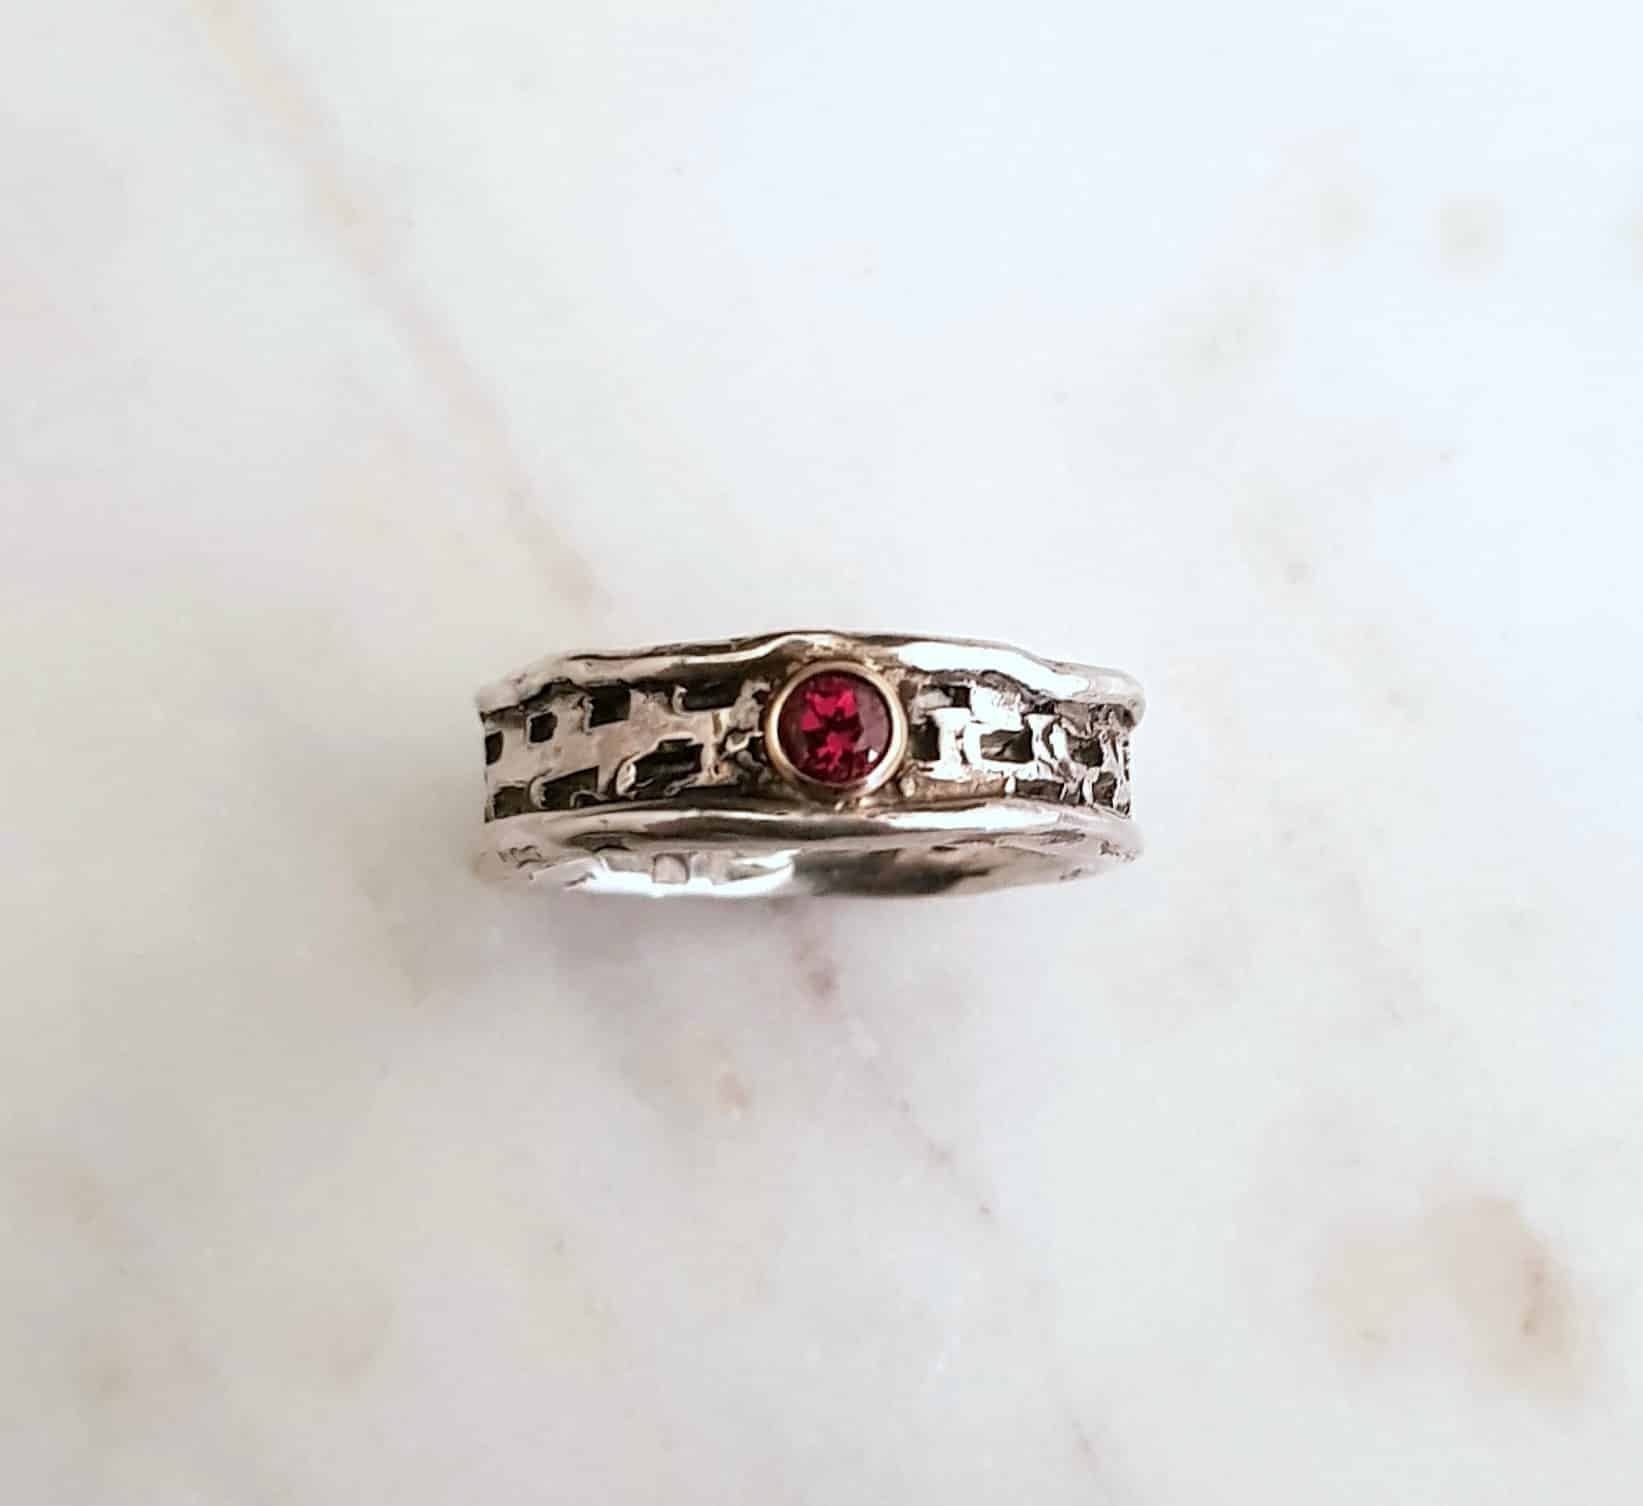 Textured Sterling Silver Ring With Garnet In Gold Stetting By Corinne Lomon